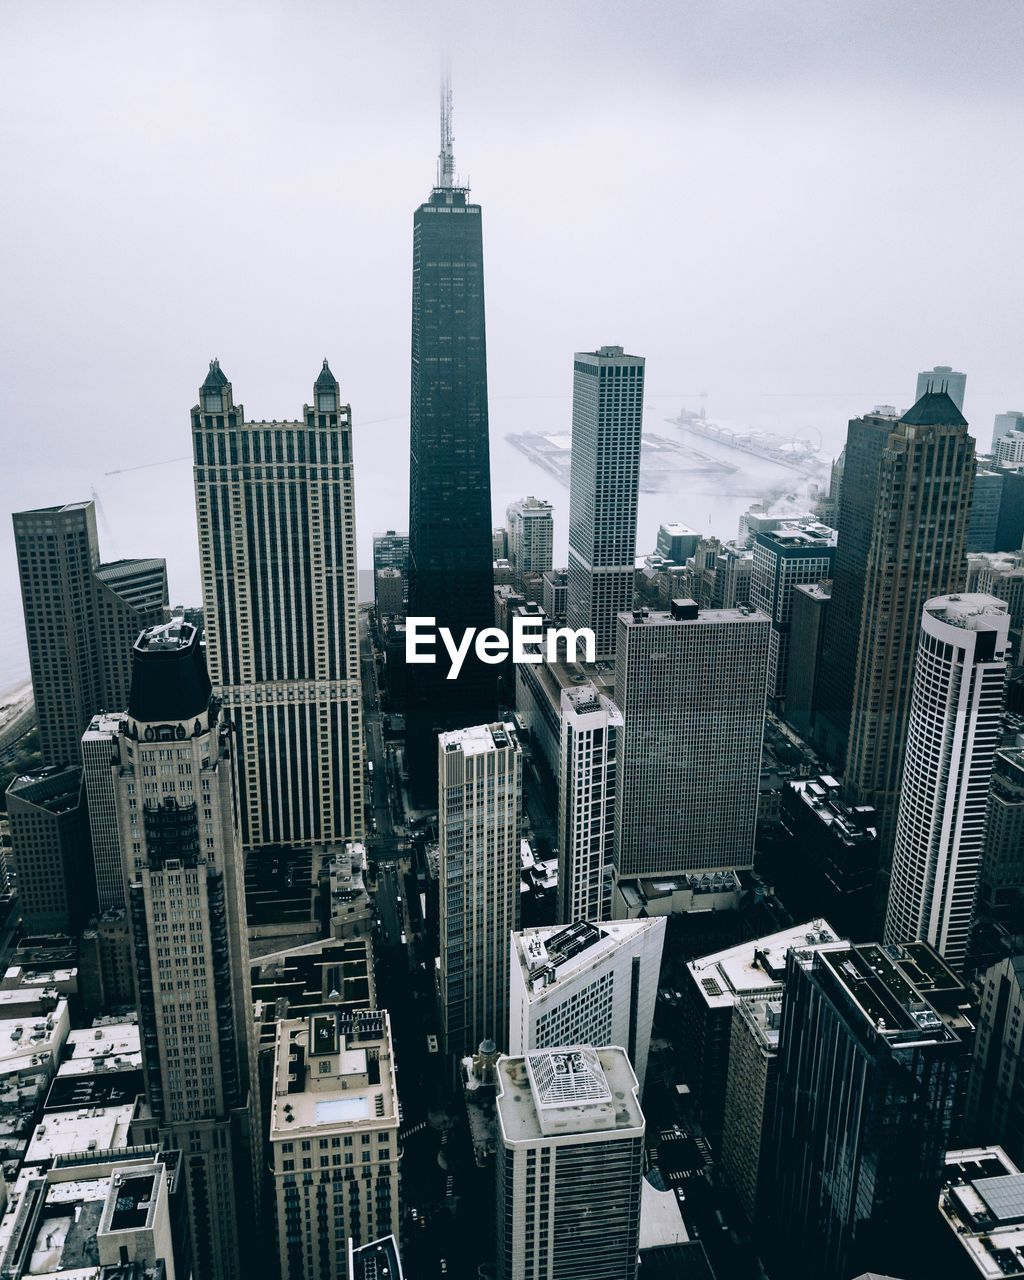 Aerial view of buildings in city during foggy weather